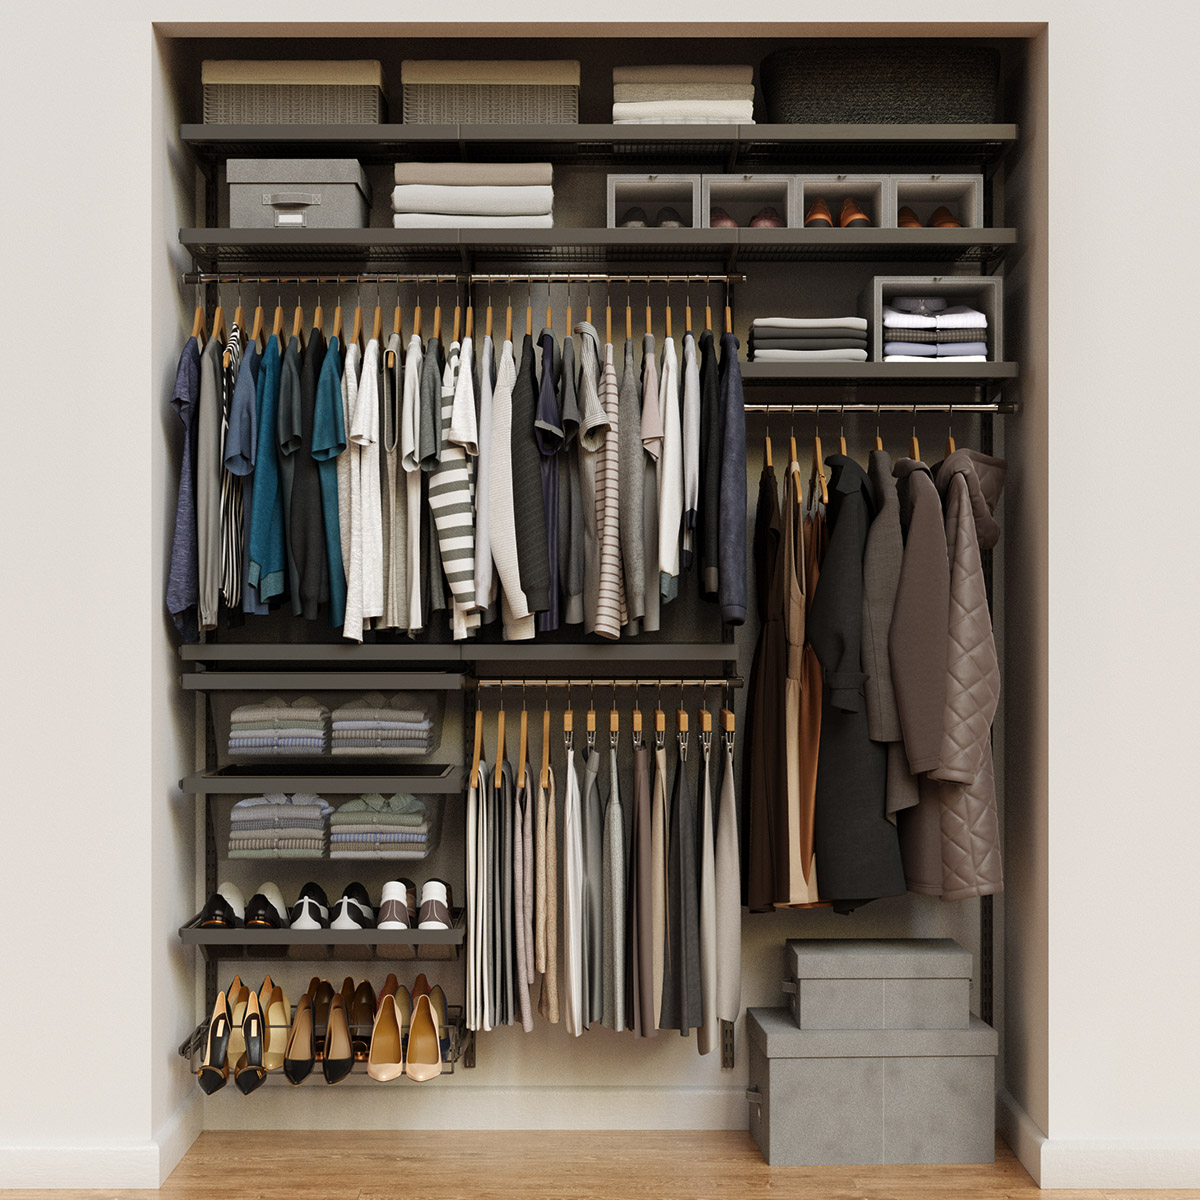 Elfa Decor 6' Graphite & Grey Reach-In Closet